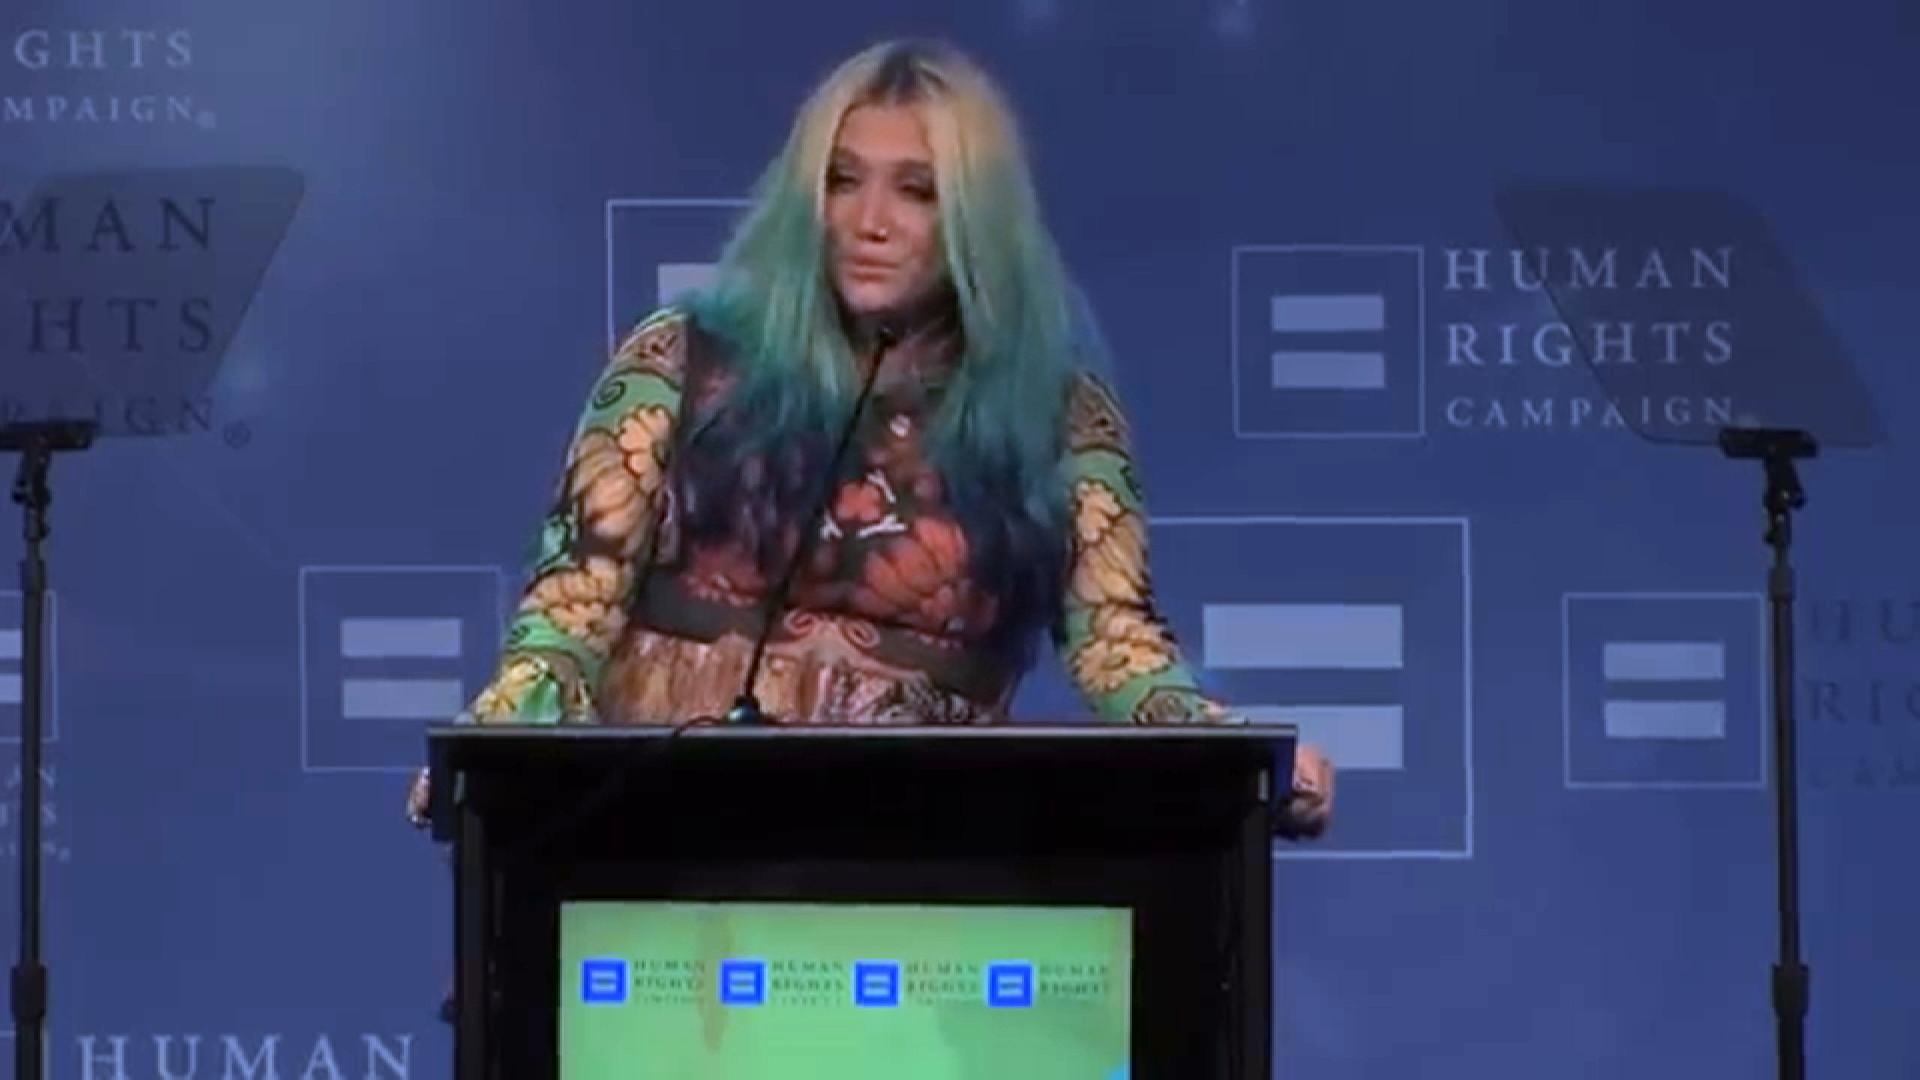 Kesha Gets Emotional While Accepting Award